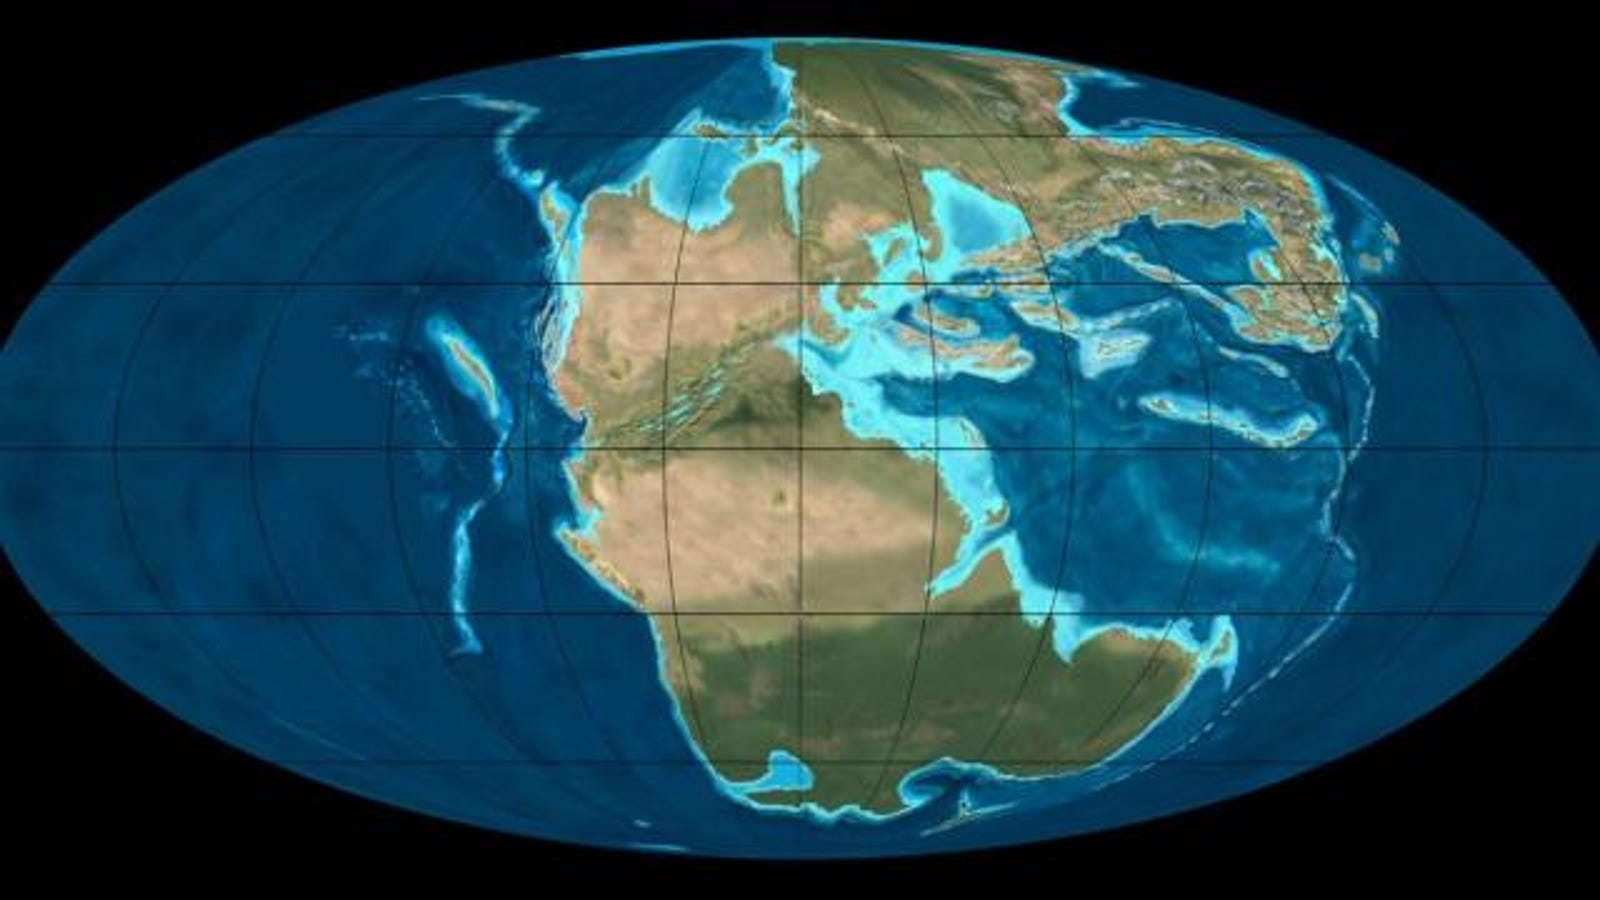 A History Of Supercontinents On Planet Earth Image Diagram Showing The Interior Please Have